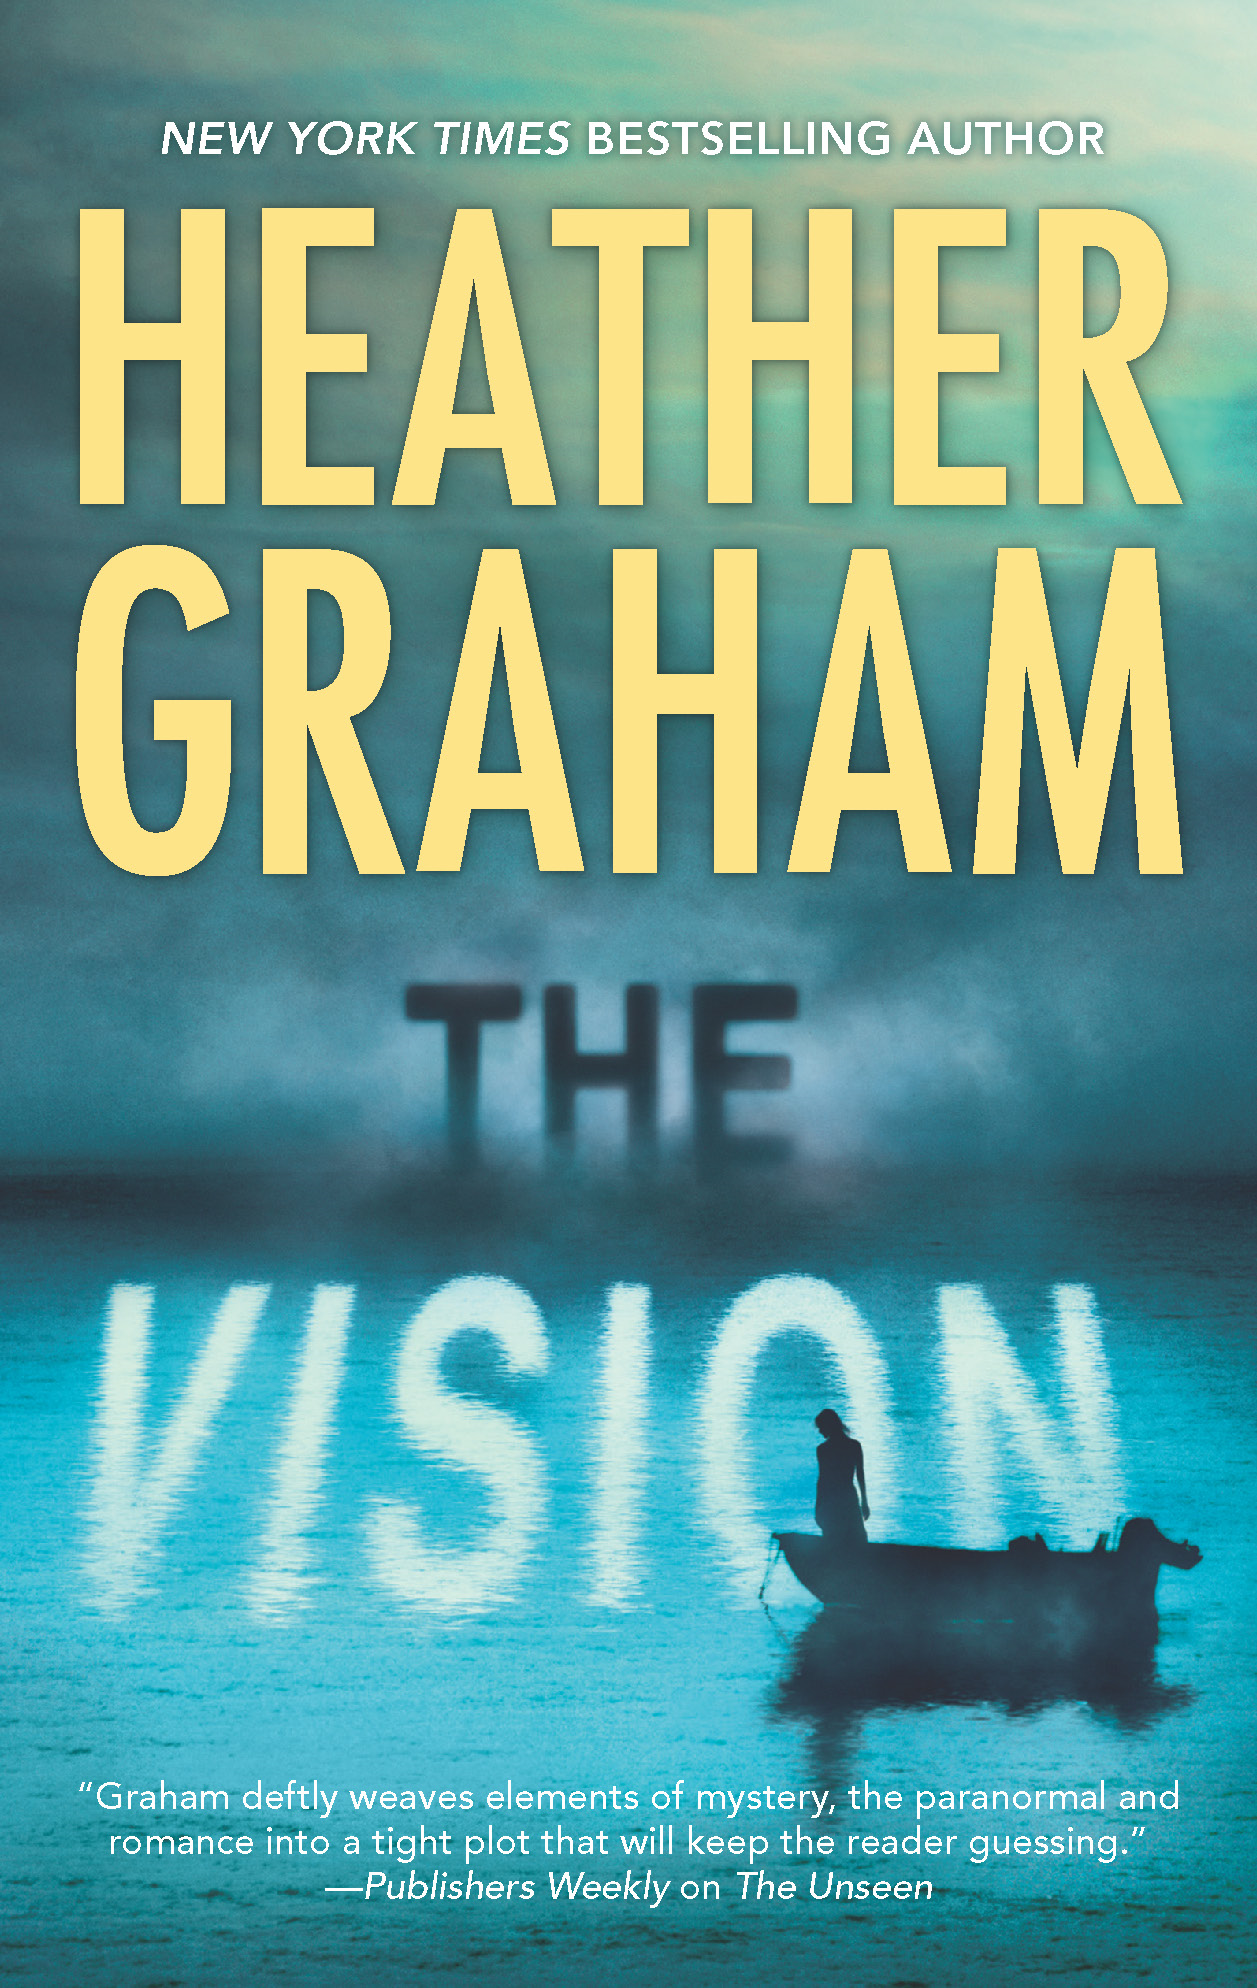 The Vision By: Heather Graham